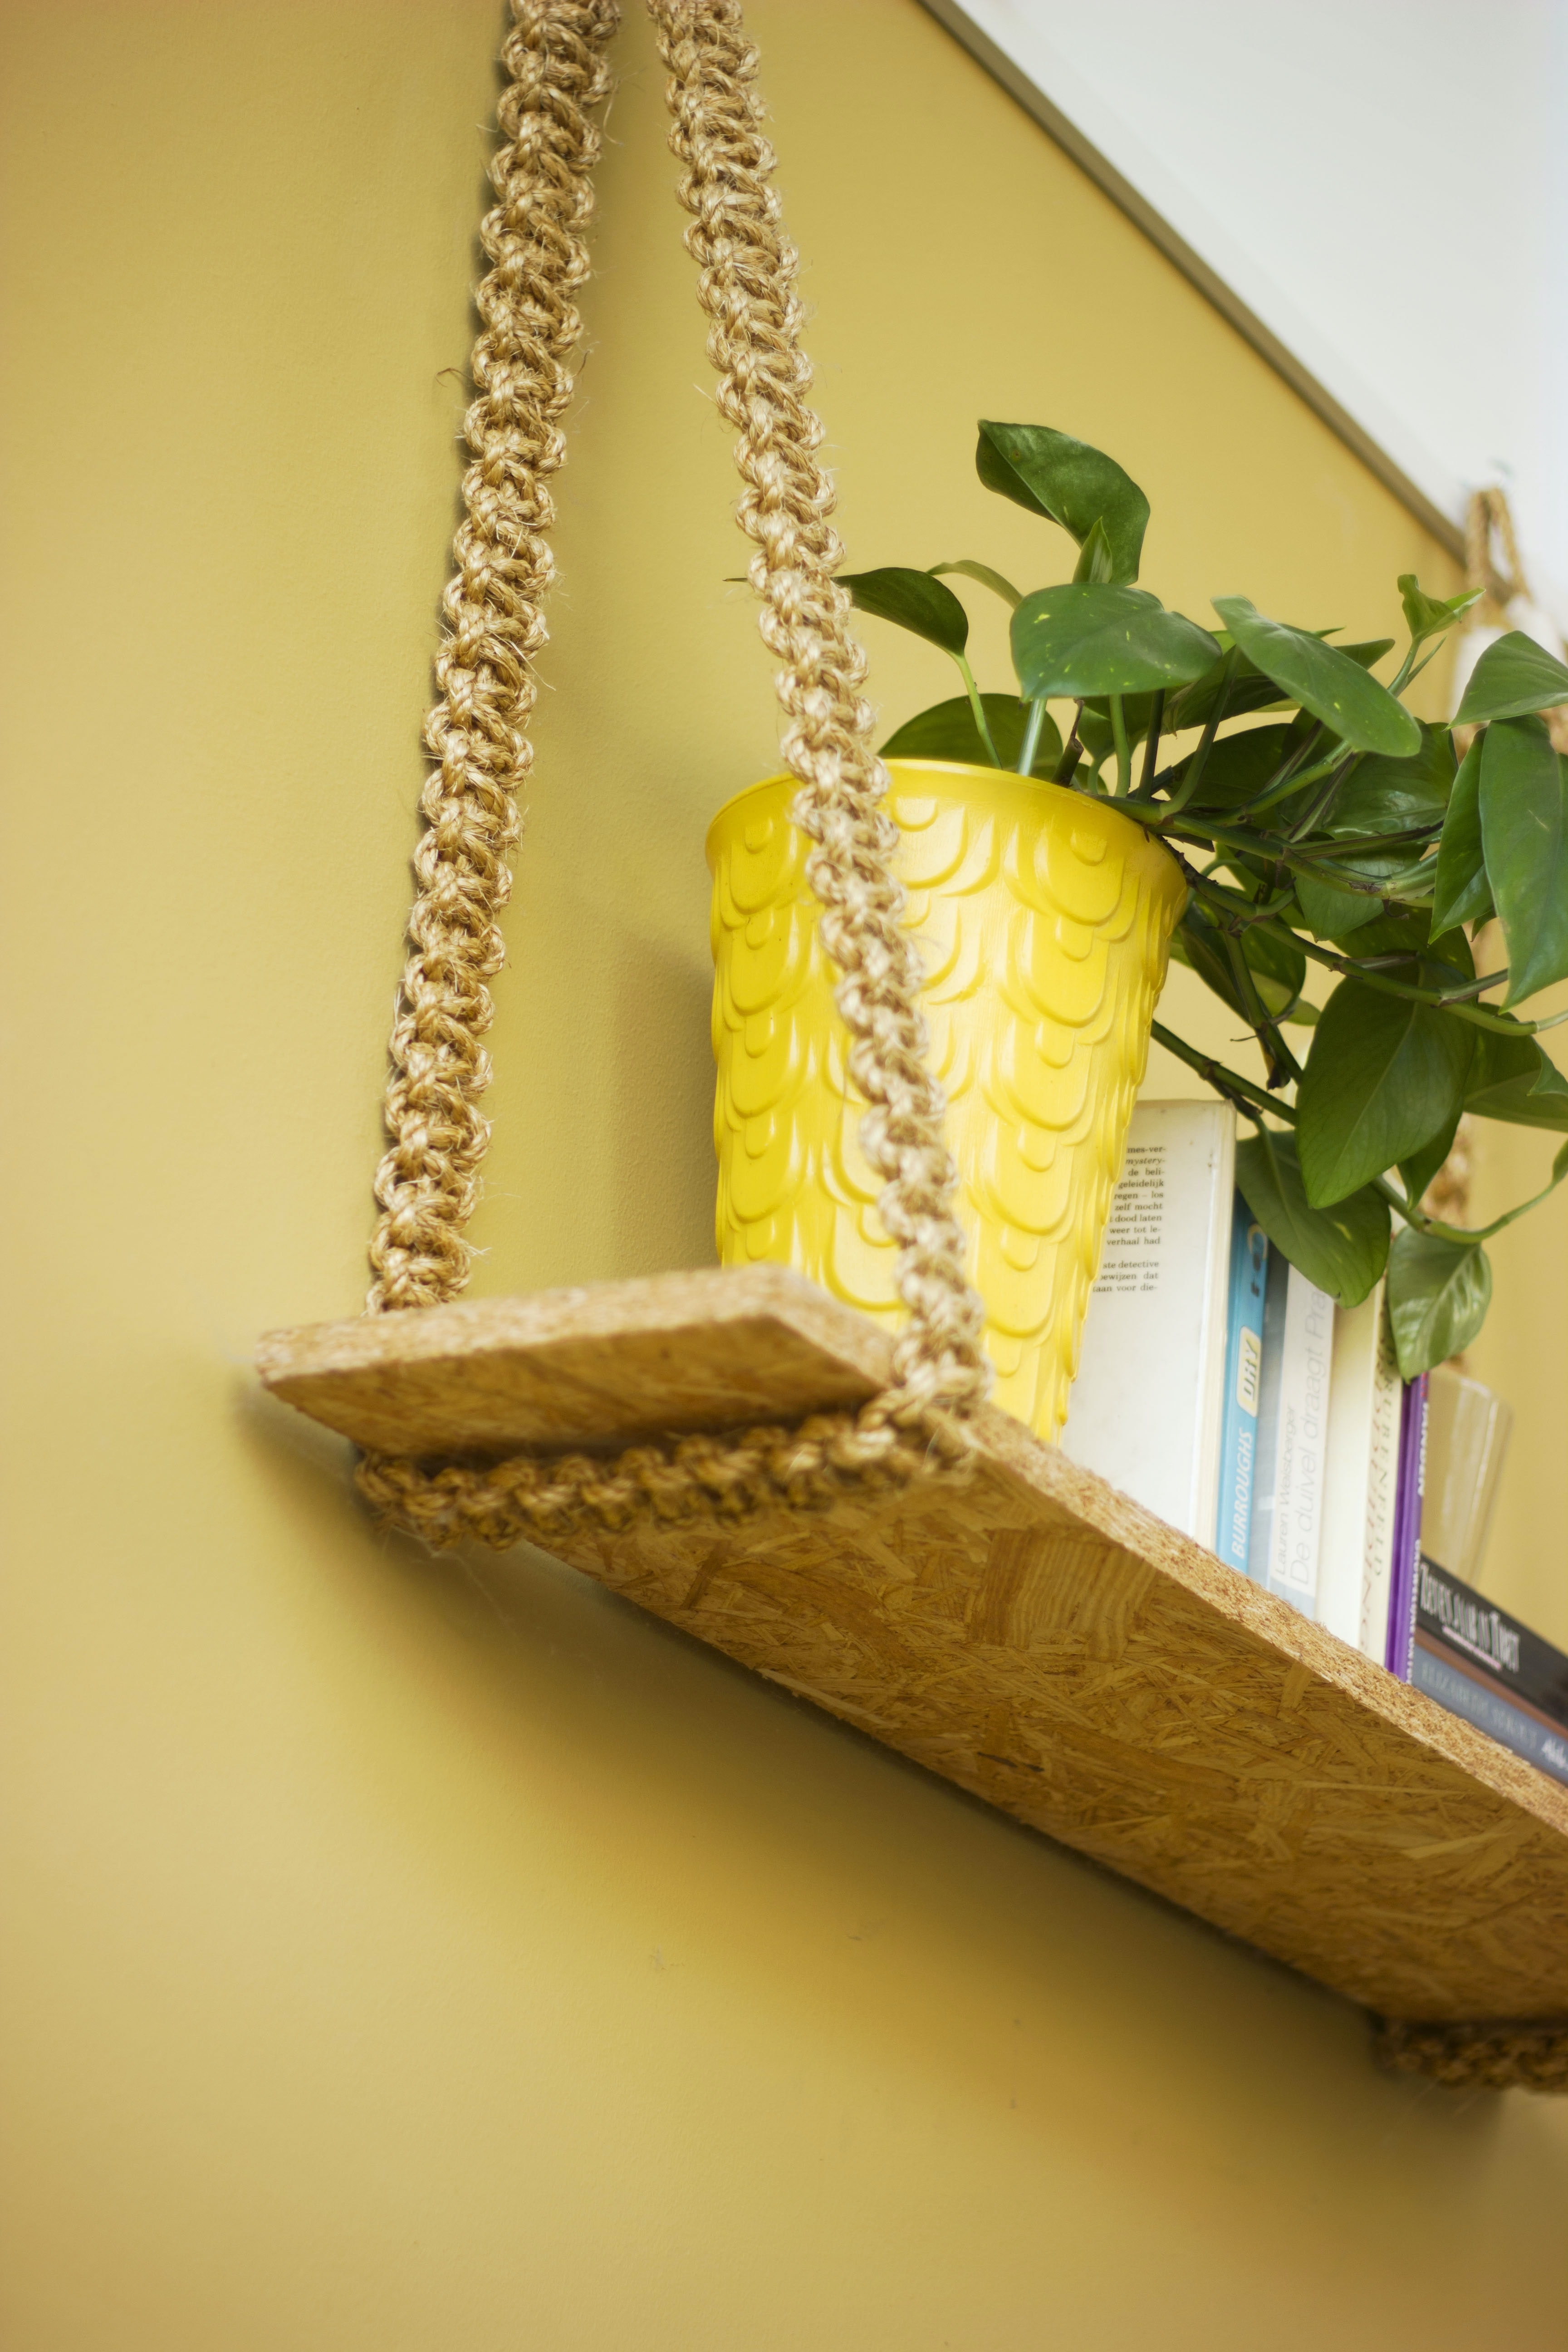 green-leafed plant in yellow pot on brown wooden wall shelf